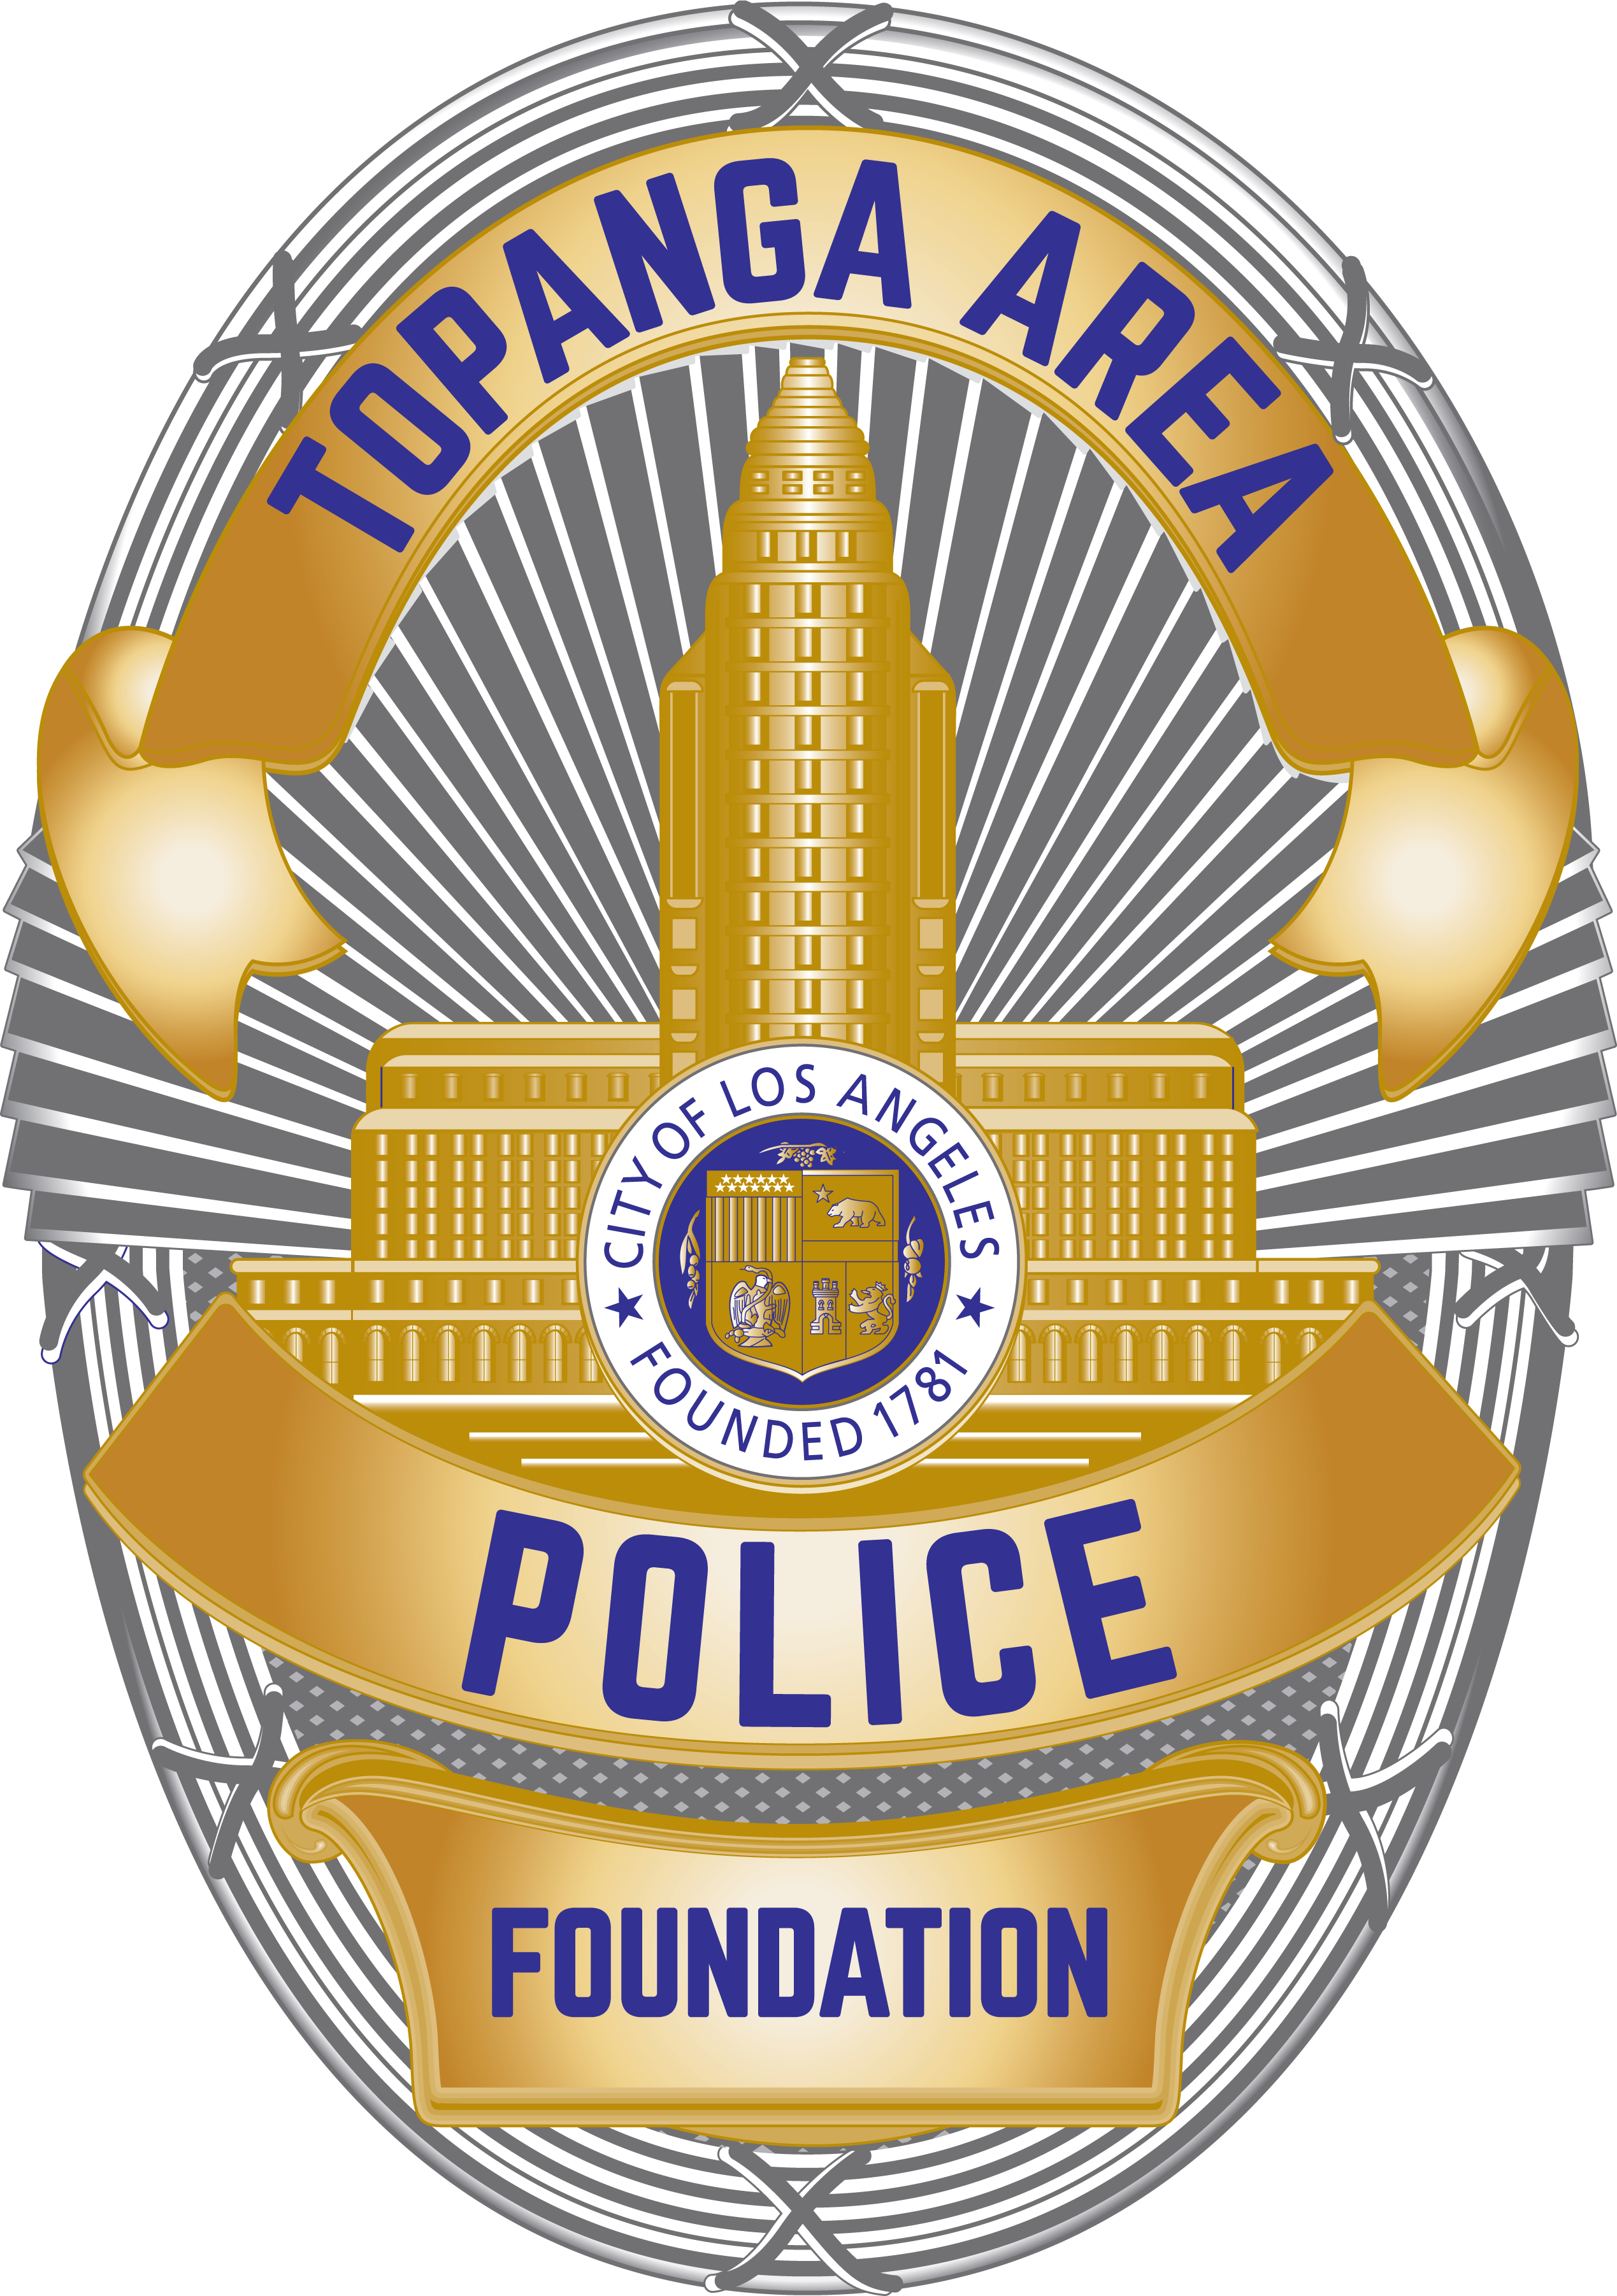 Topanga Area Police Foundation